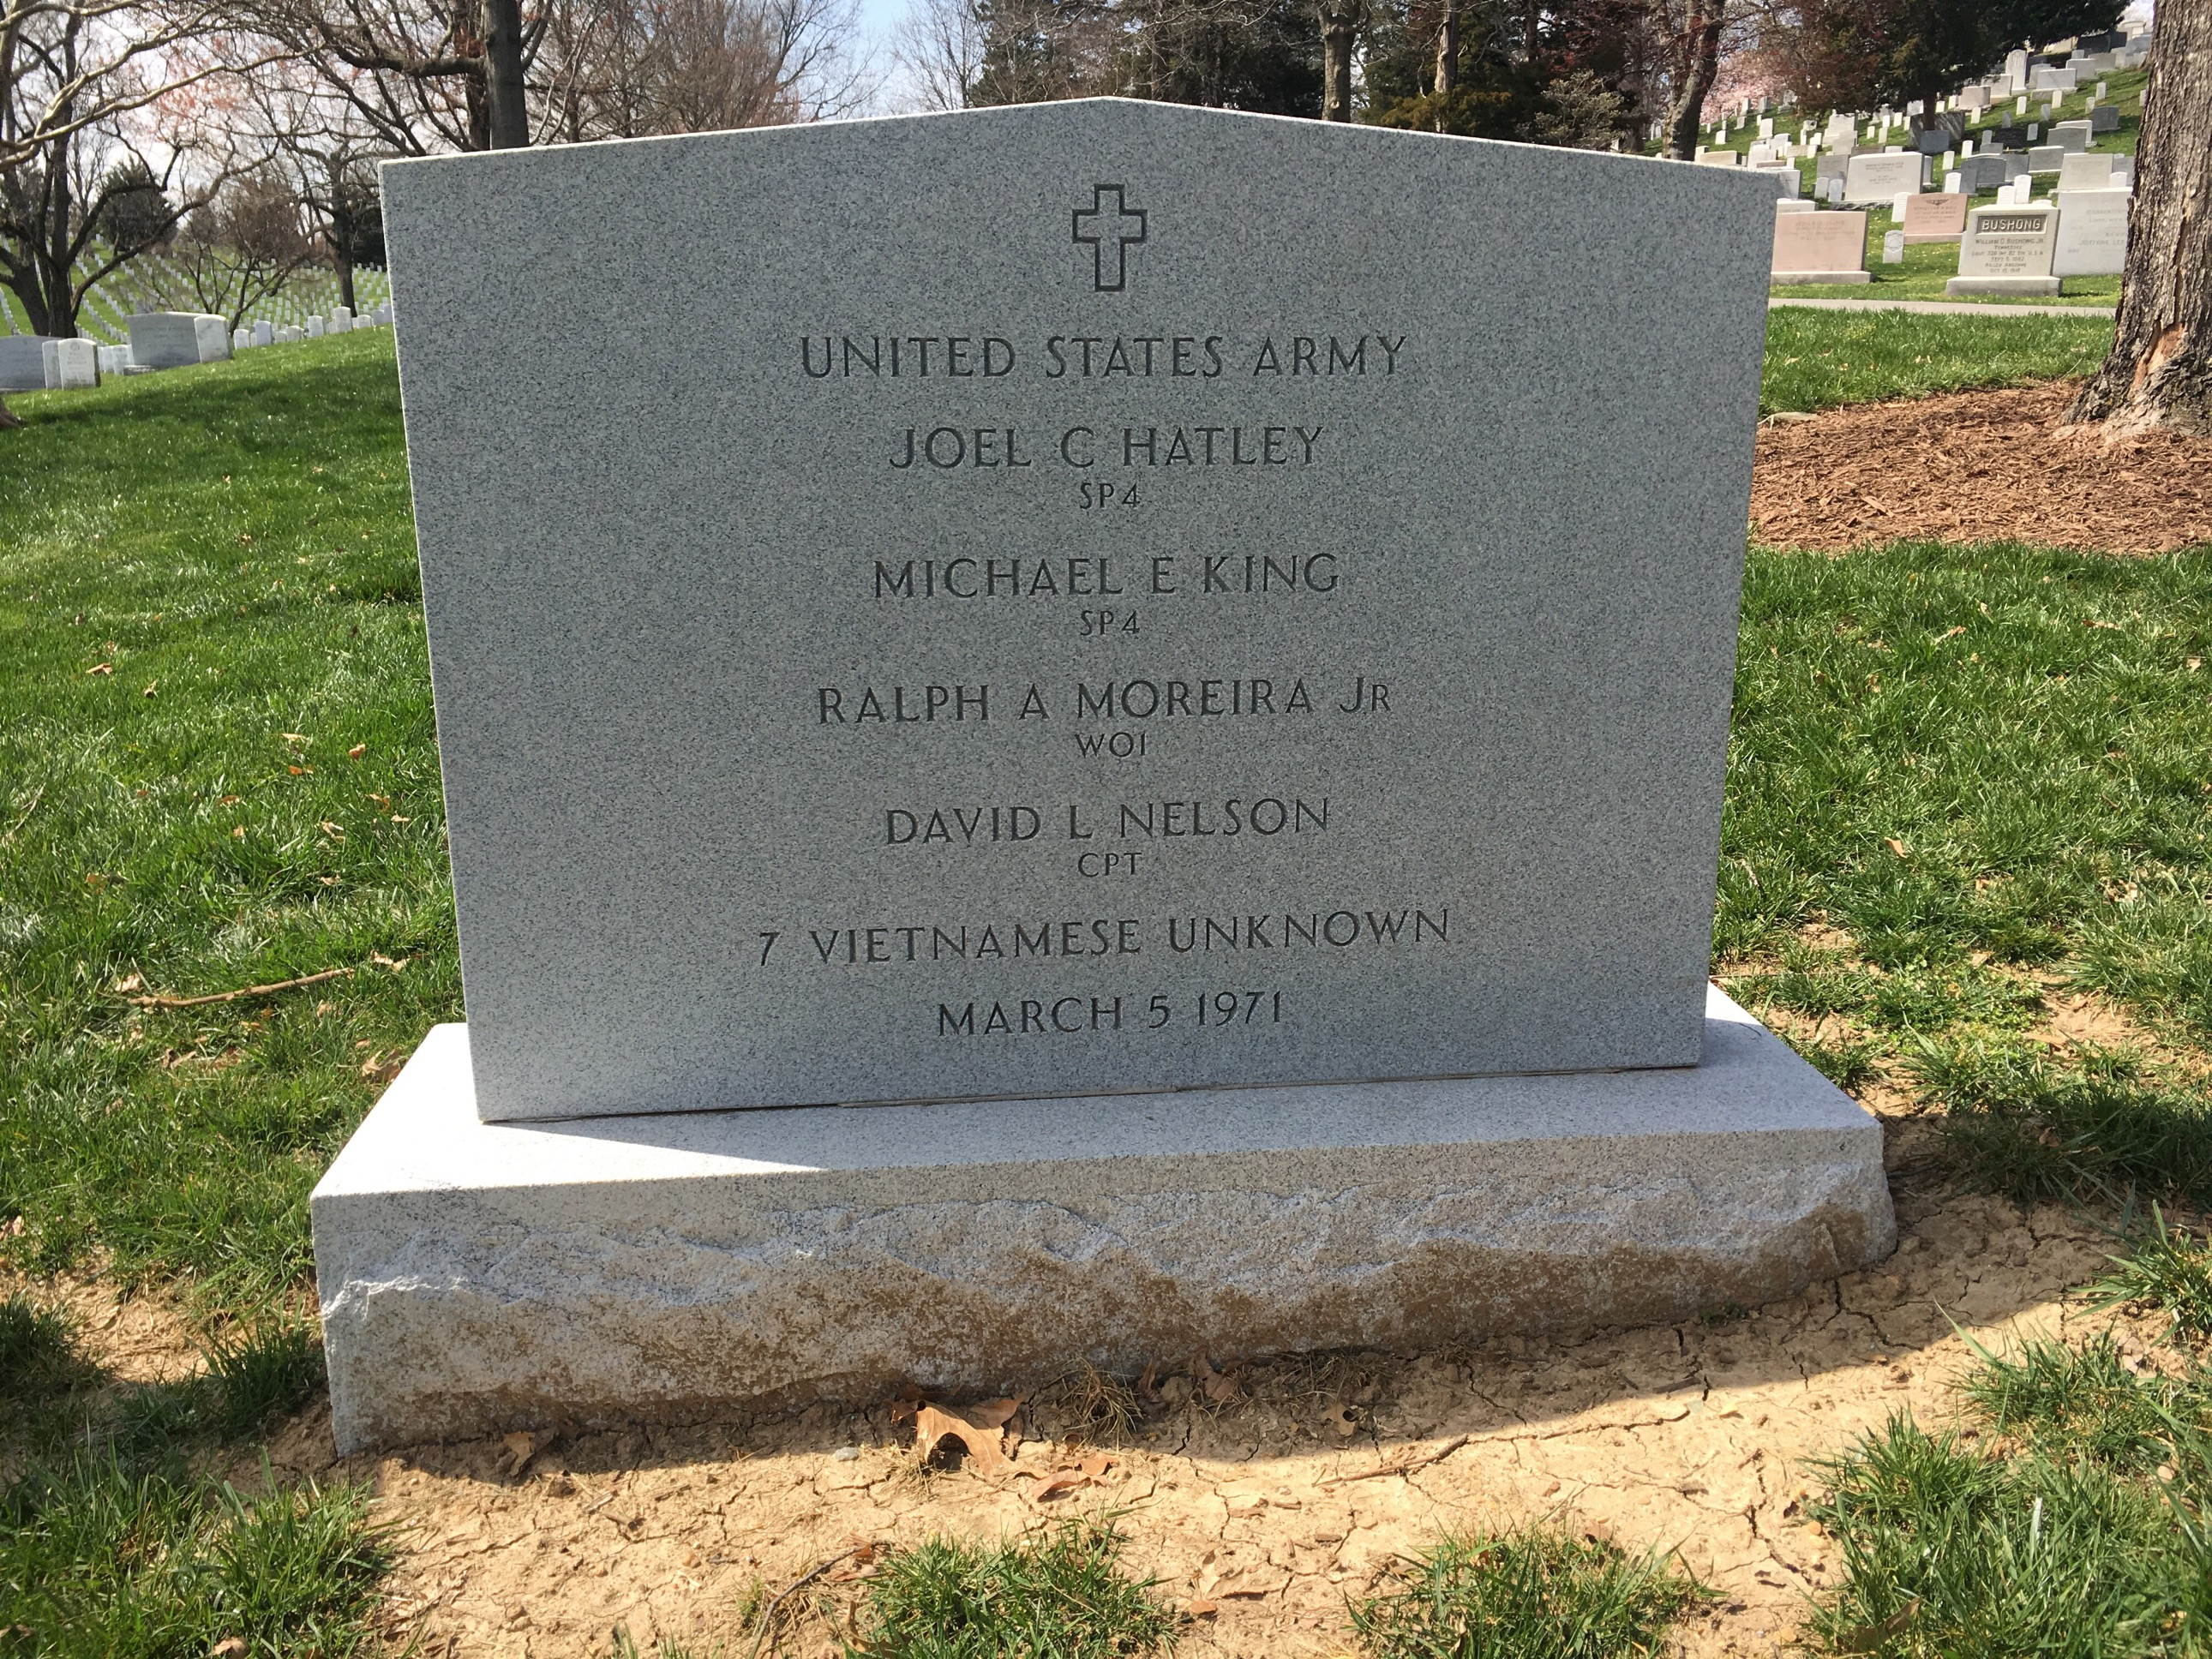 Headstone for a group burial that includes seven unknown South Vietnamese service members